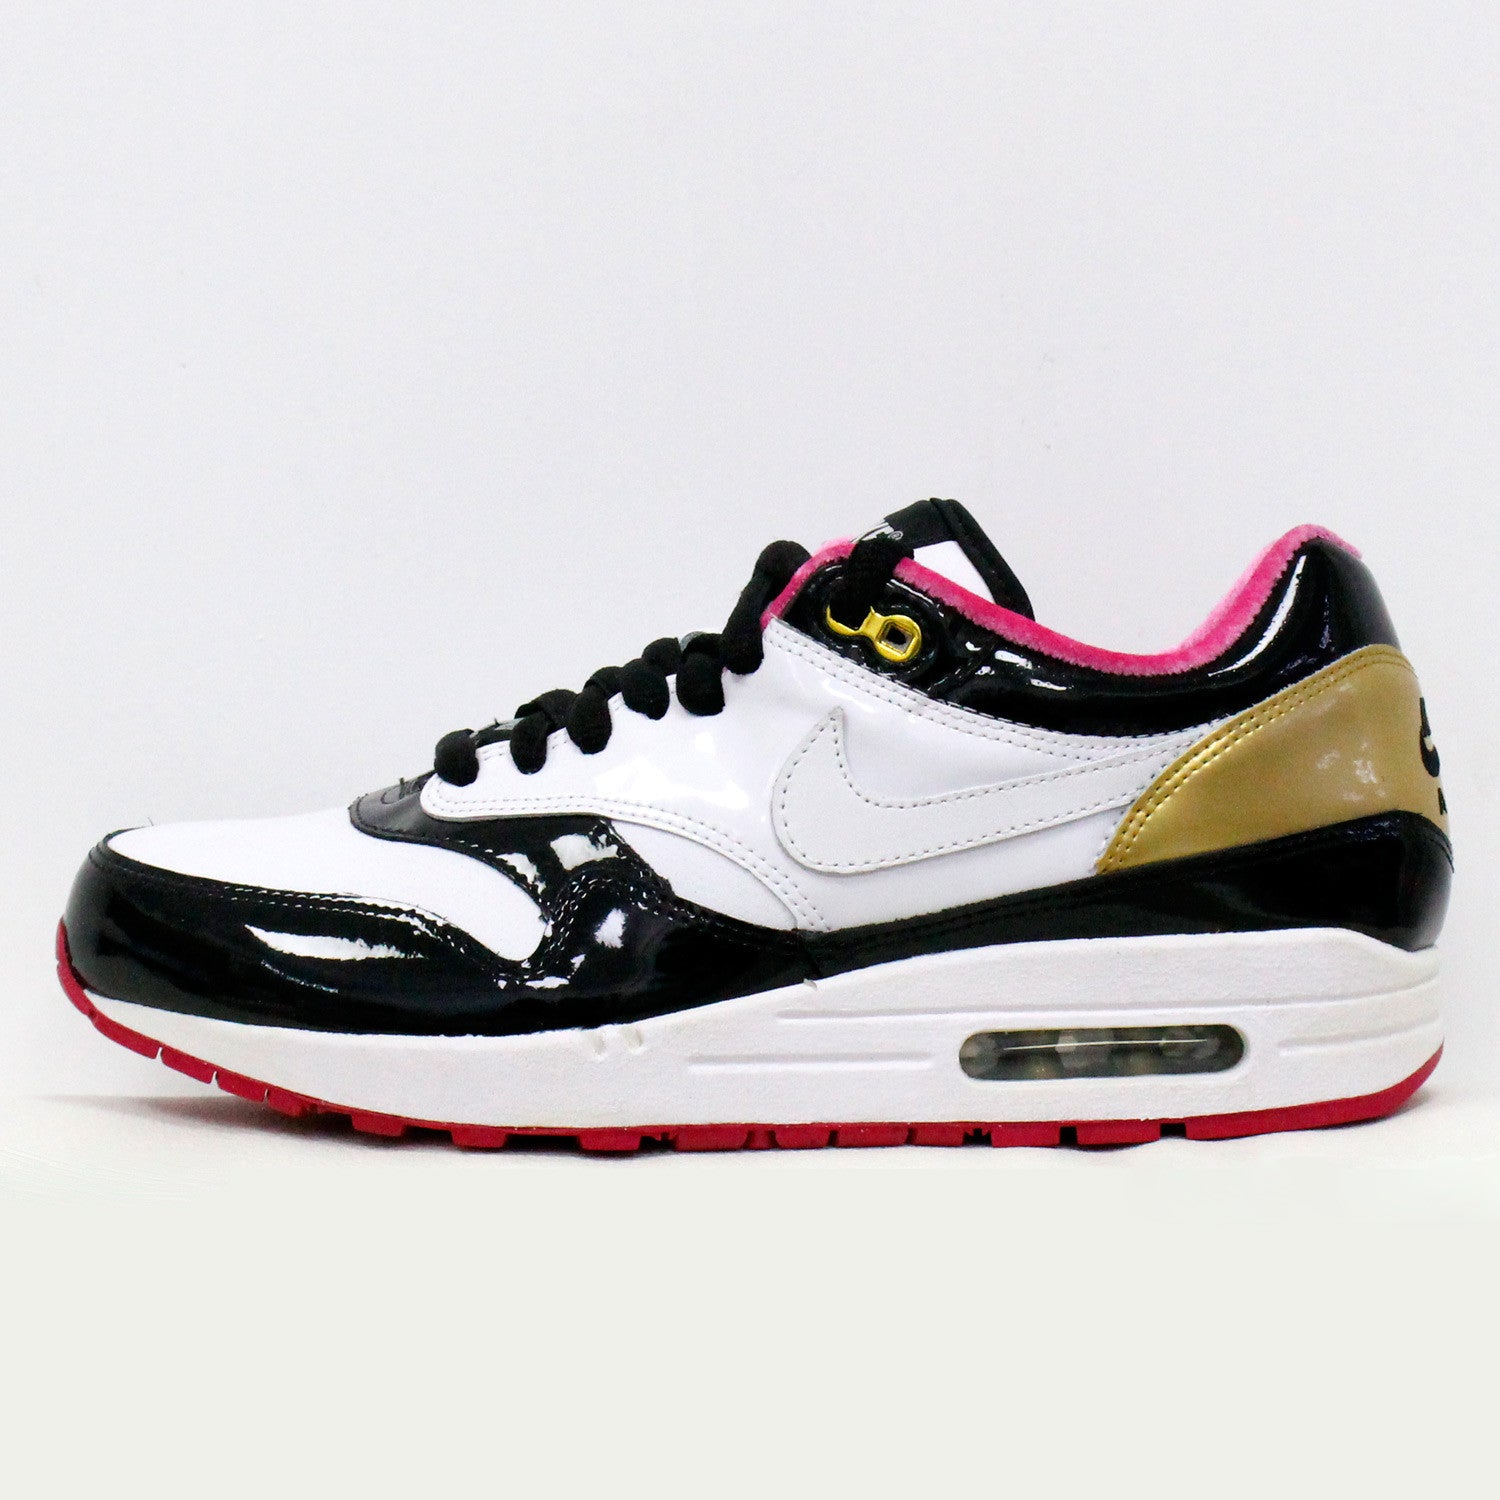 best service 4b0b3 29d33 PHANTACi x Nike Air Max 1 APFC Jay Chou Grand Piano (359558-111)   KIX-FILES